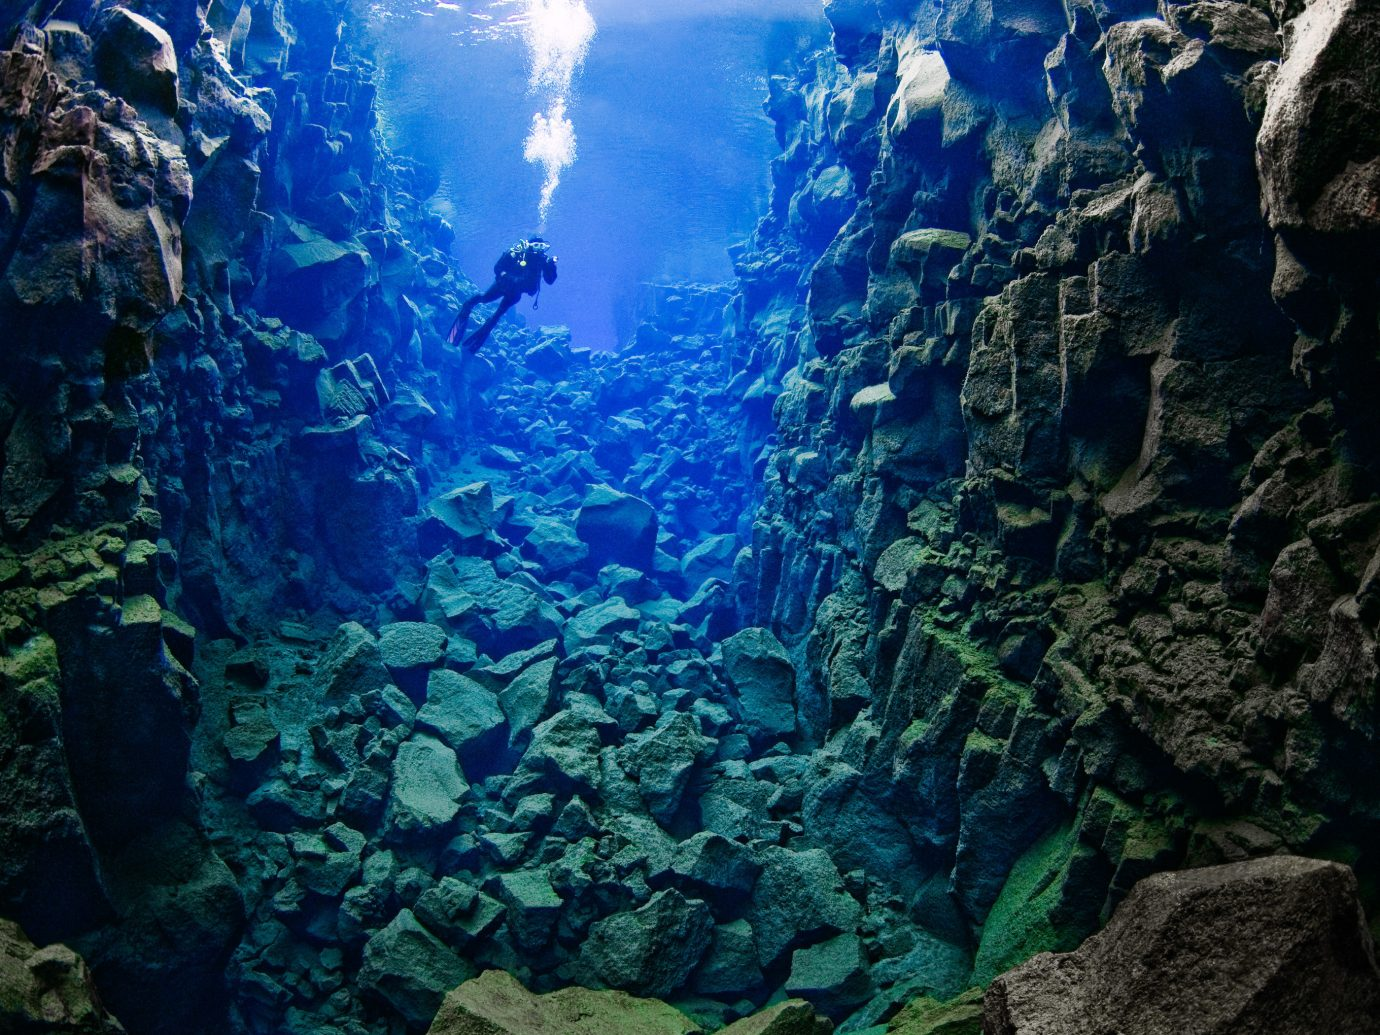 Iceland Travel Tips rock reef outdoor landform marine biology geographical feature Nature coral reef underwater biology mountain coral screenshot formation stone aquarium swimming surrounded ocean floor